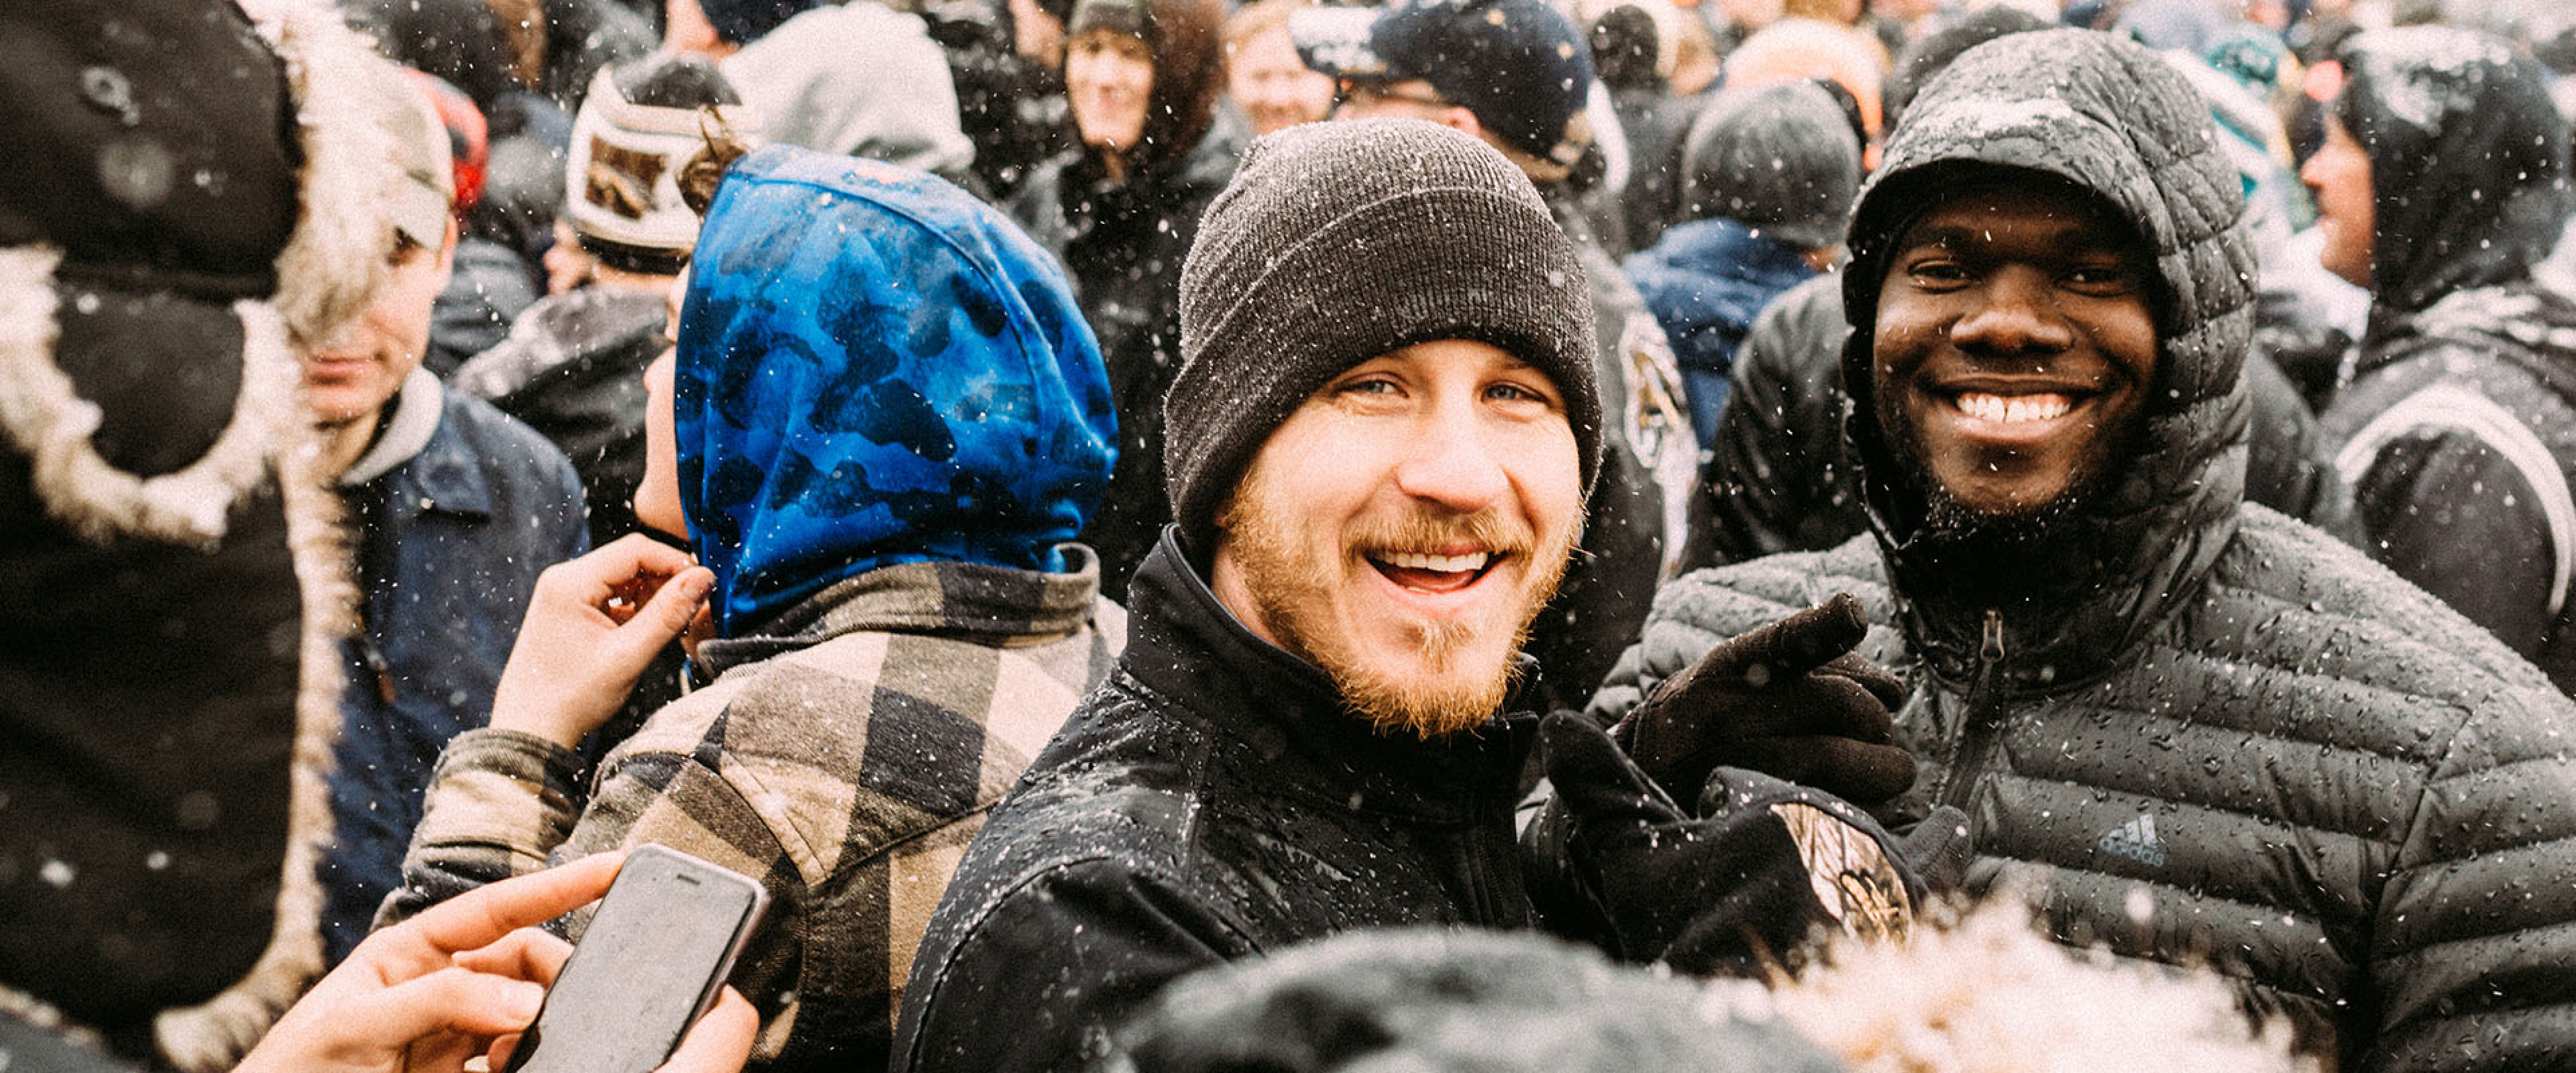 Two WMU students smile amidst a crowd on a snowy day